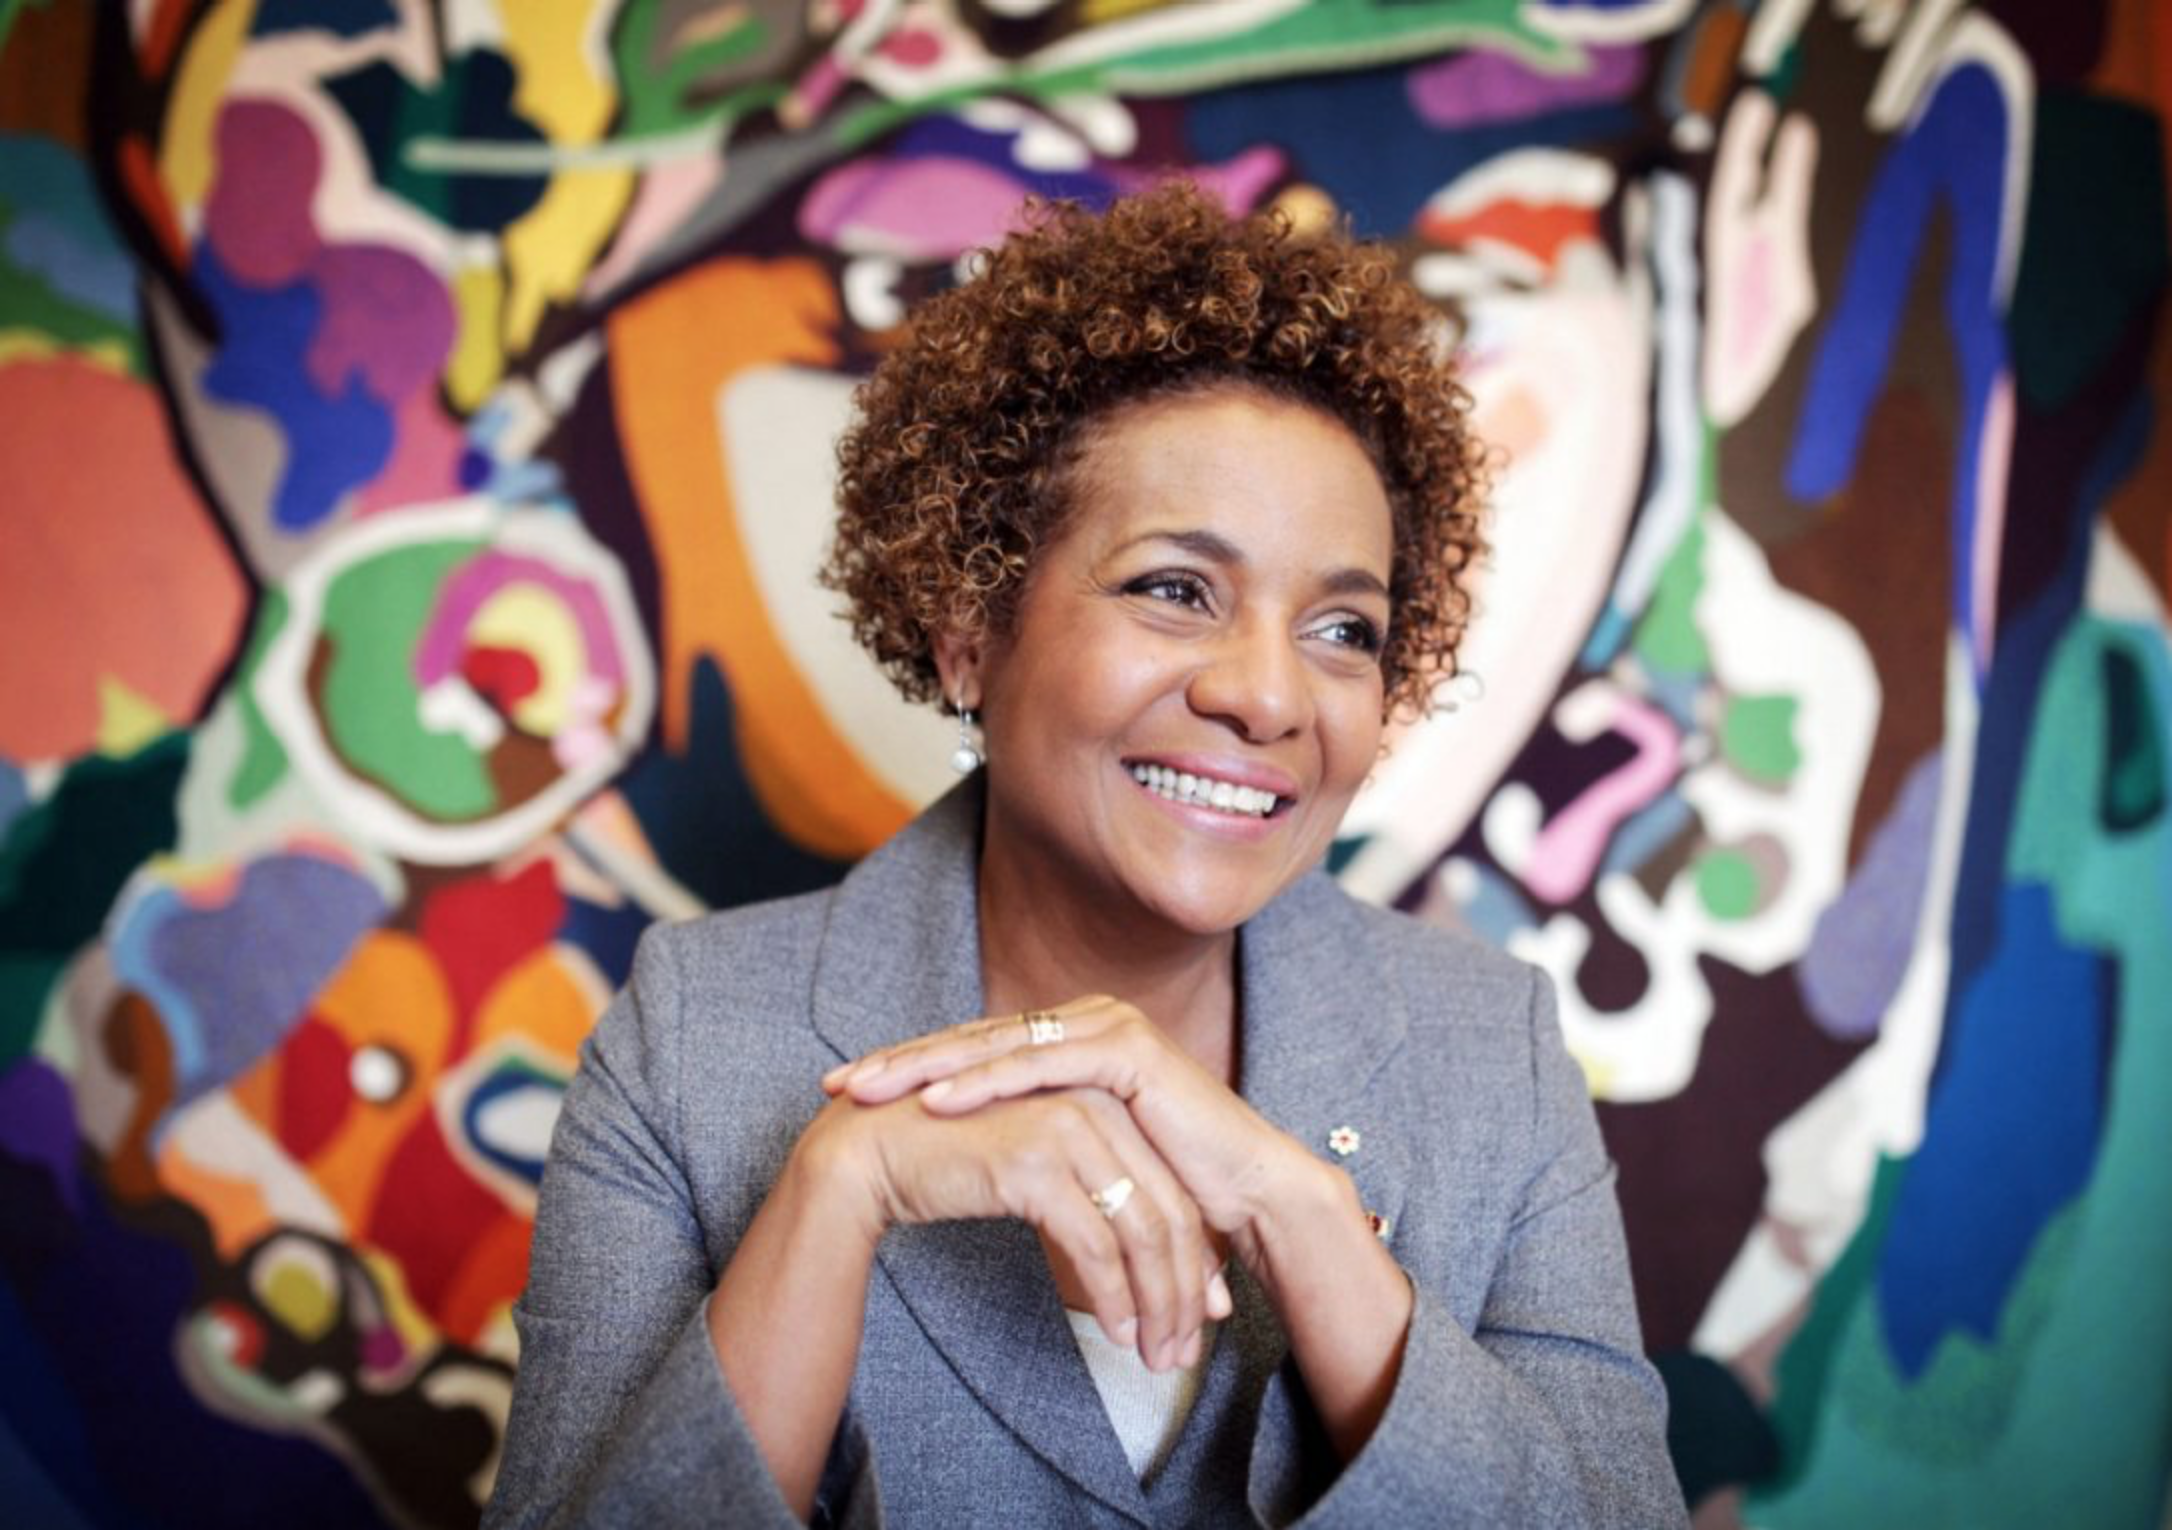 Former governor general Michaelle Jean, seen here in 2014, says Canada can serve as an example for Donald Trump. (COLE BURSTON / AFP/GETTY IMAGES)